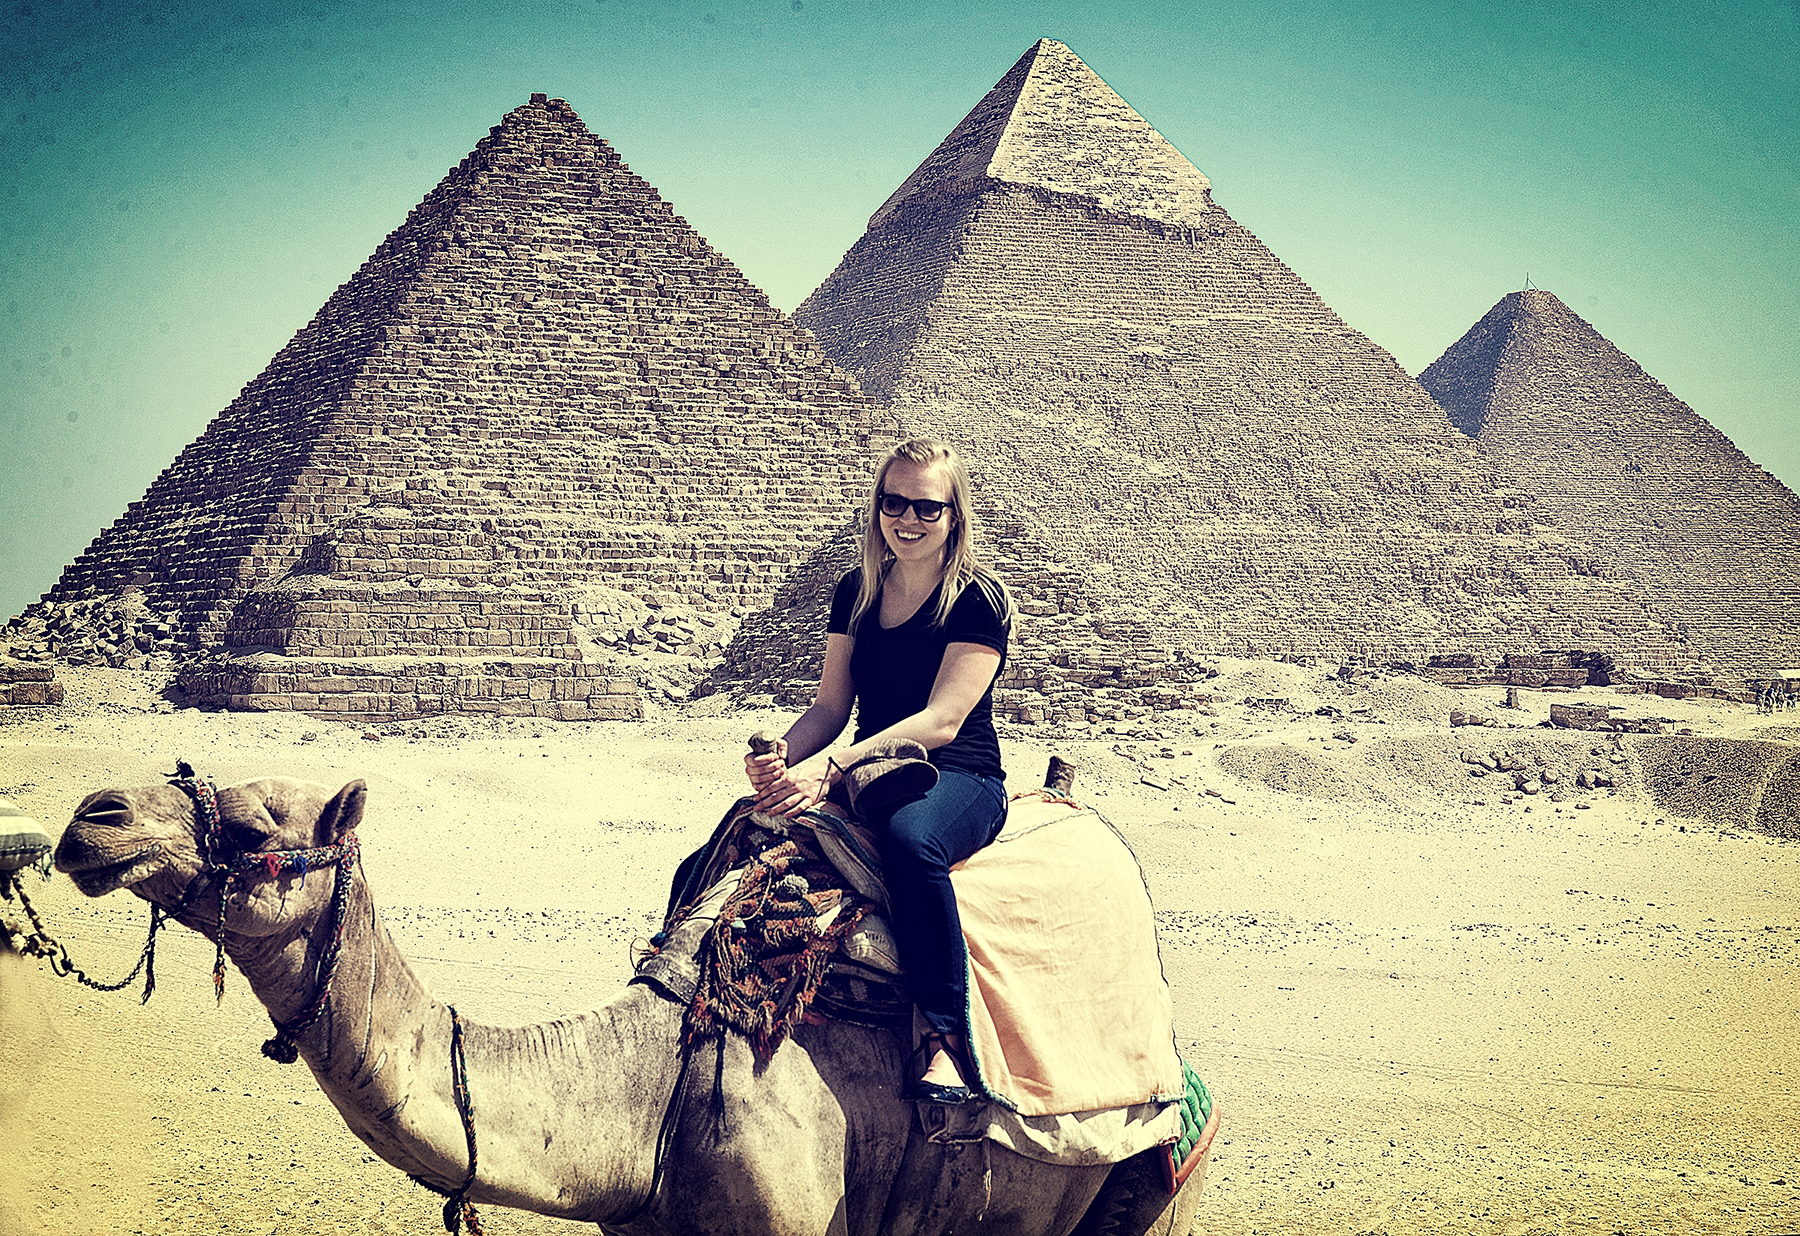 Margaret riding a camel at the Pyramids of Giza